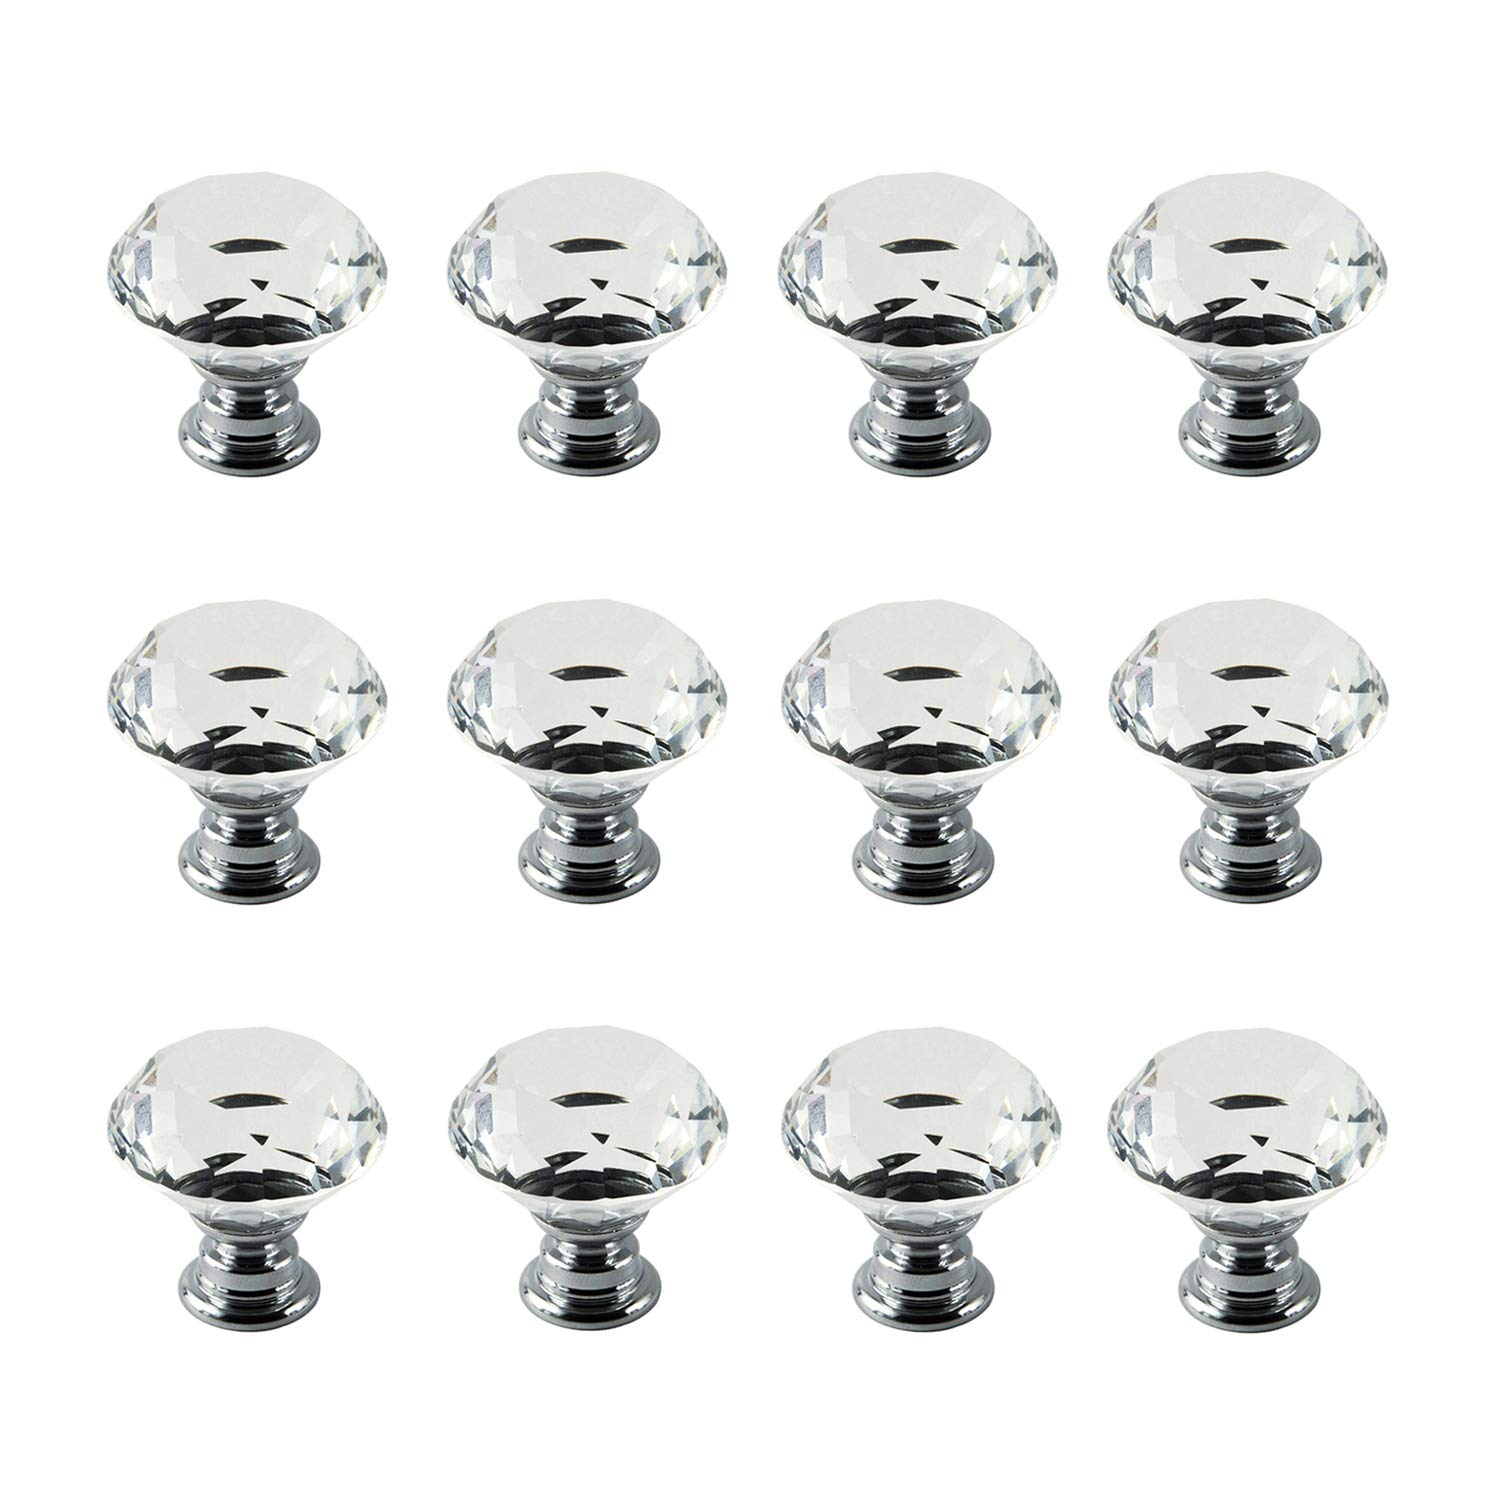 IQUALITE 12pcs Diamond Shape Crystal Glass 30mm Drawer Knob Pull Handle Usd for Caebinet, Drawer